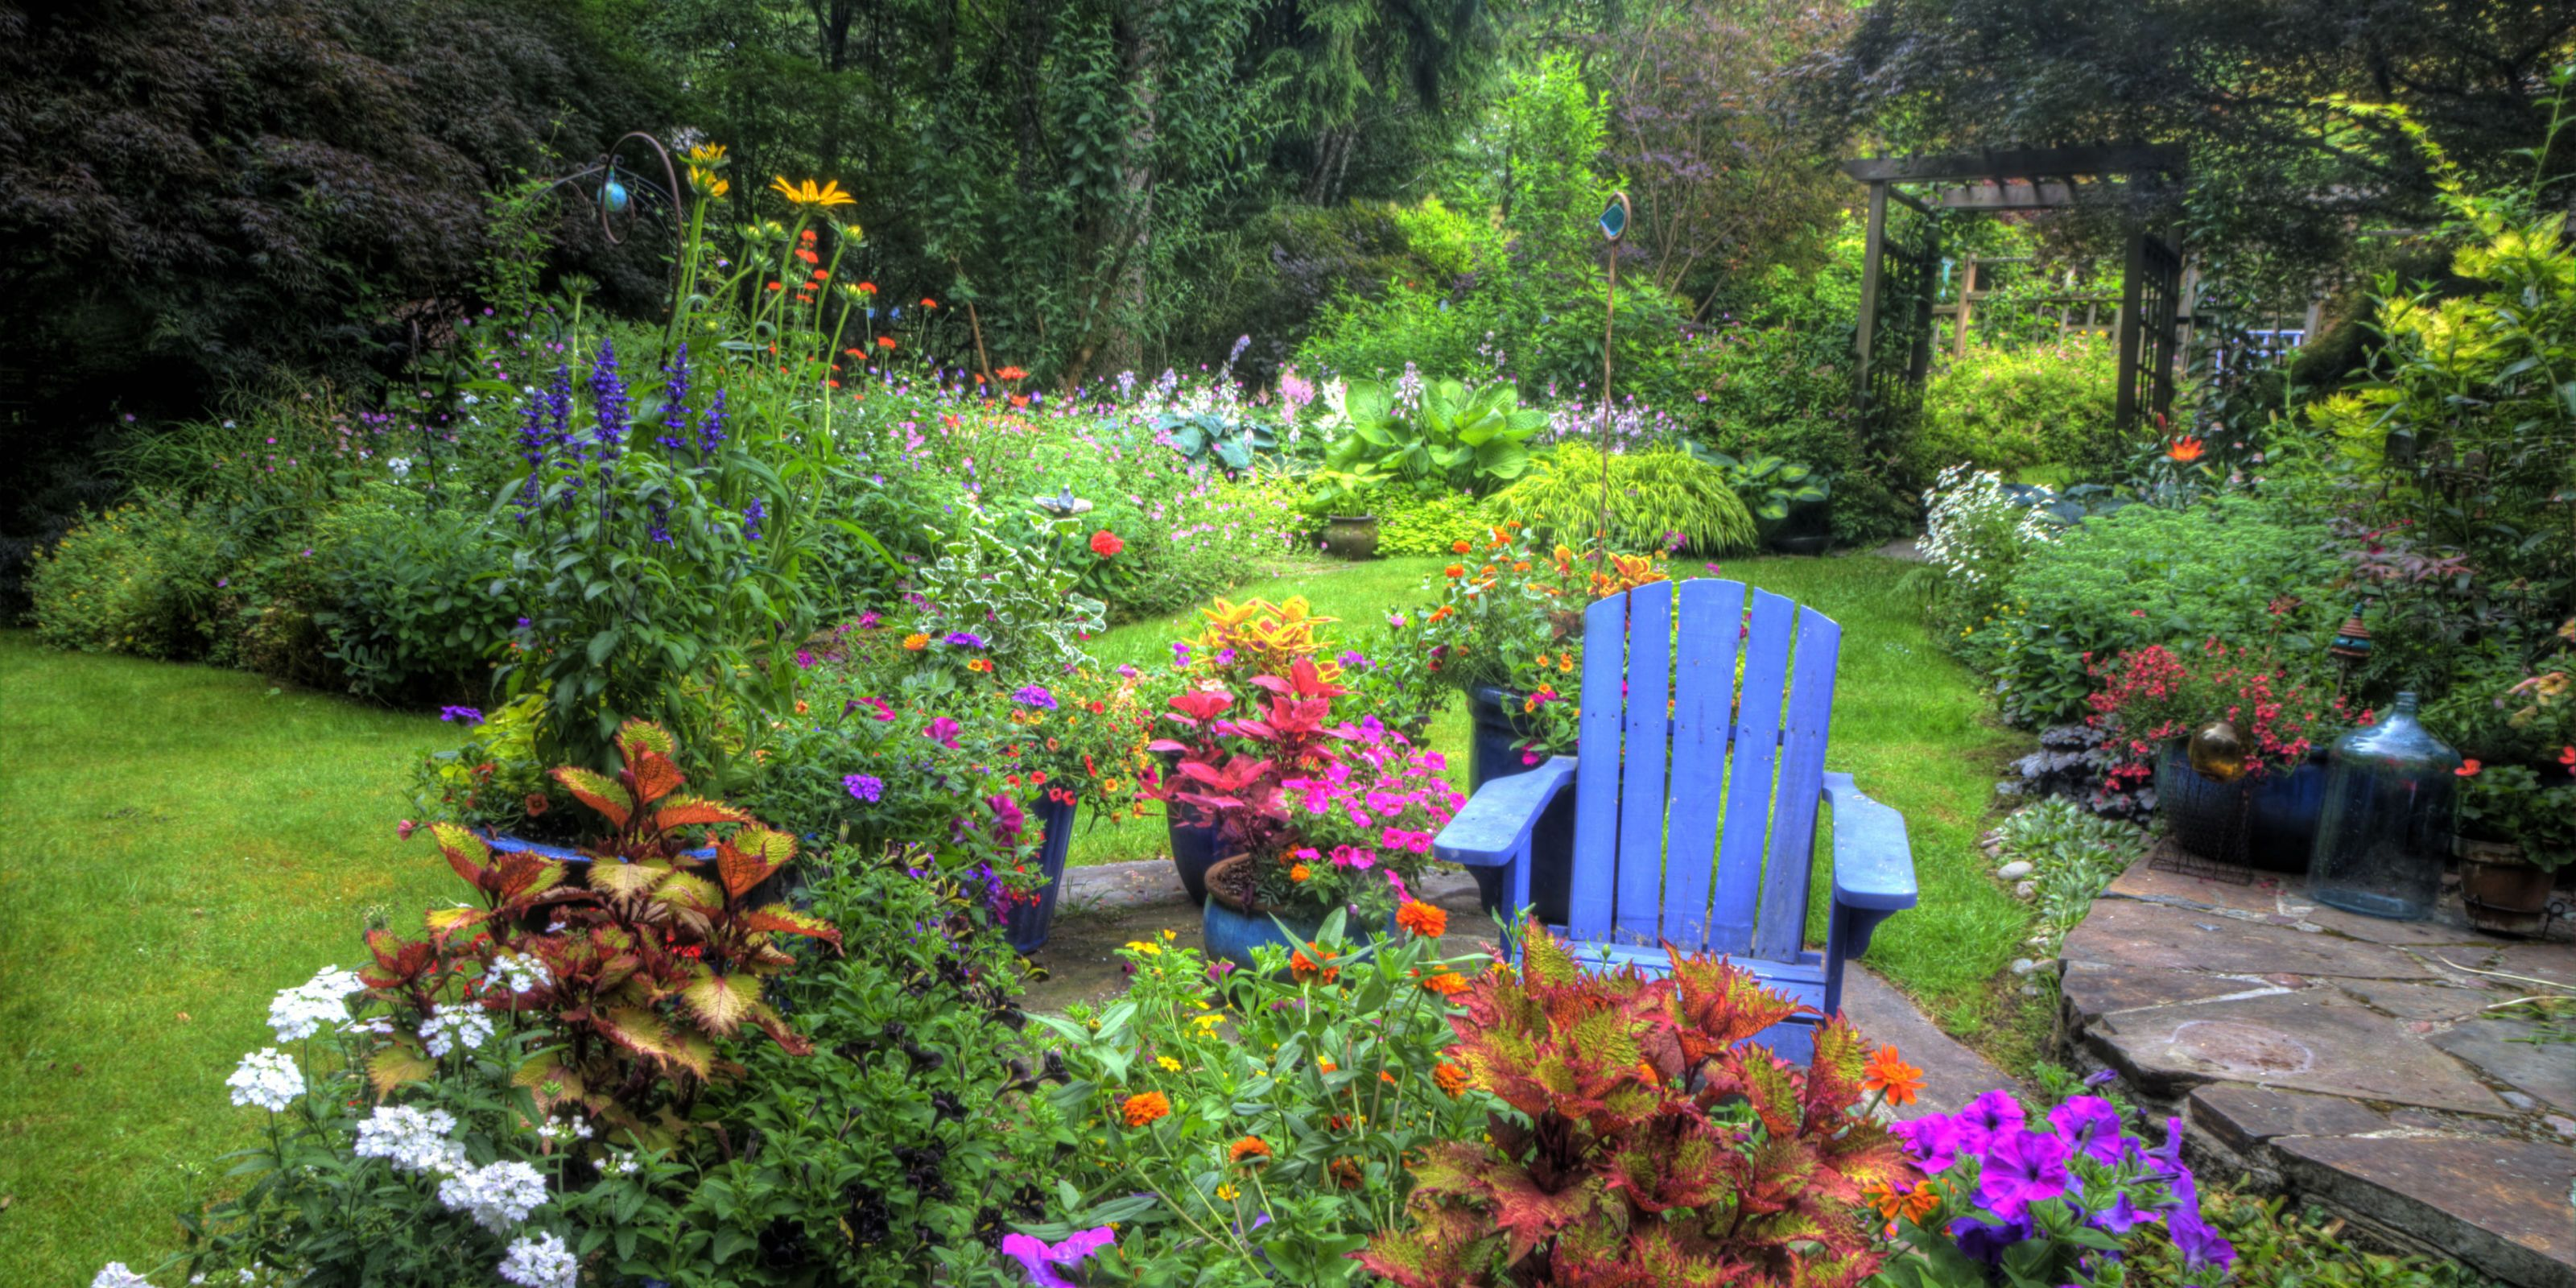 50 Genius Tips That'll Improve Any Outdoor Space